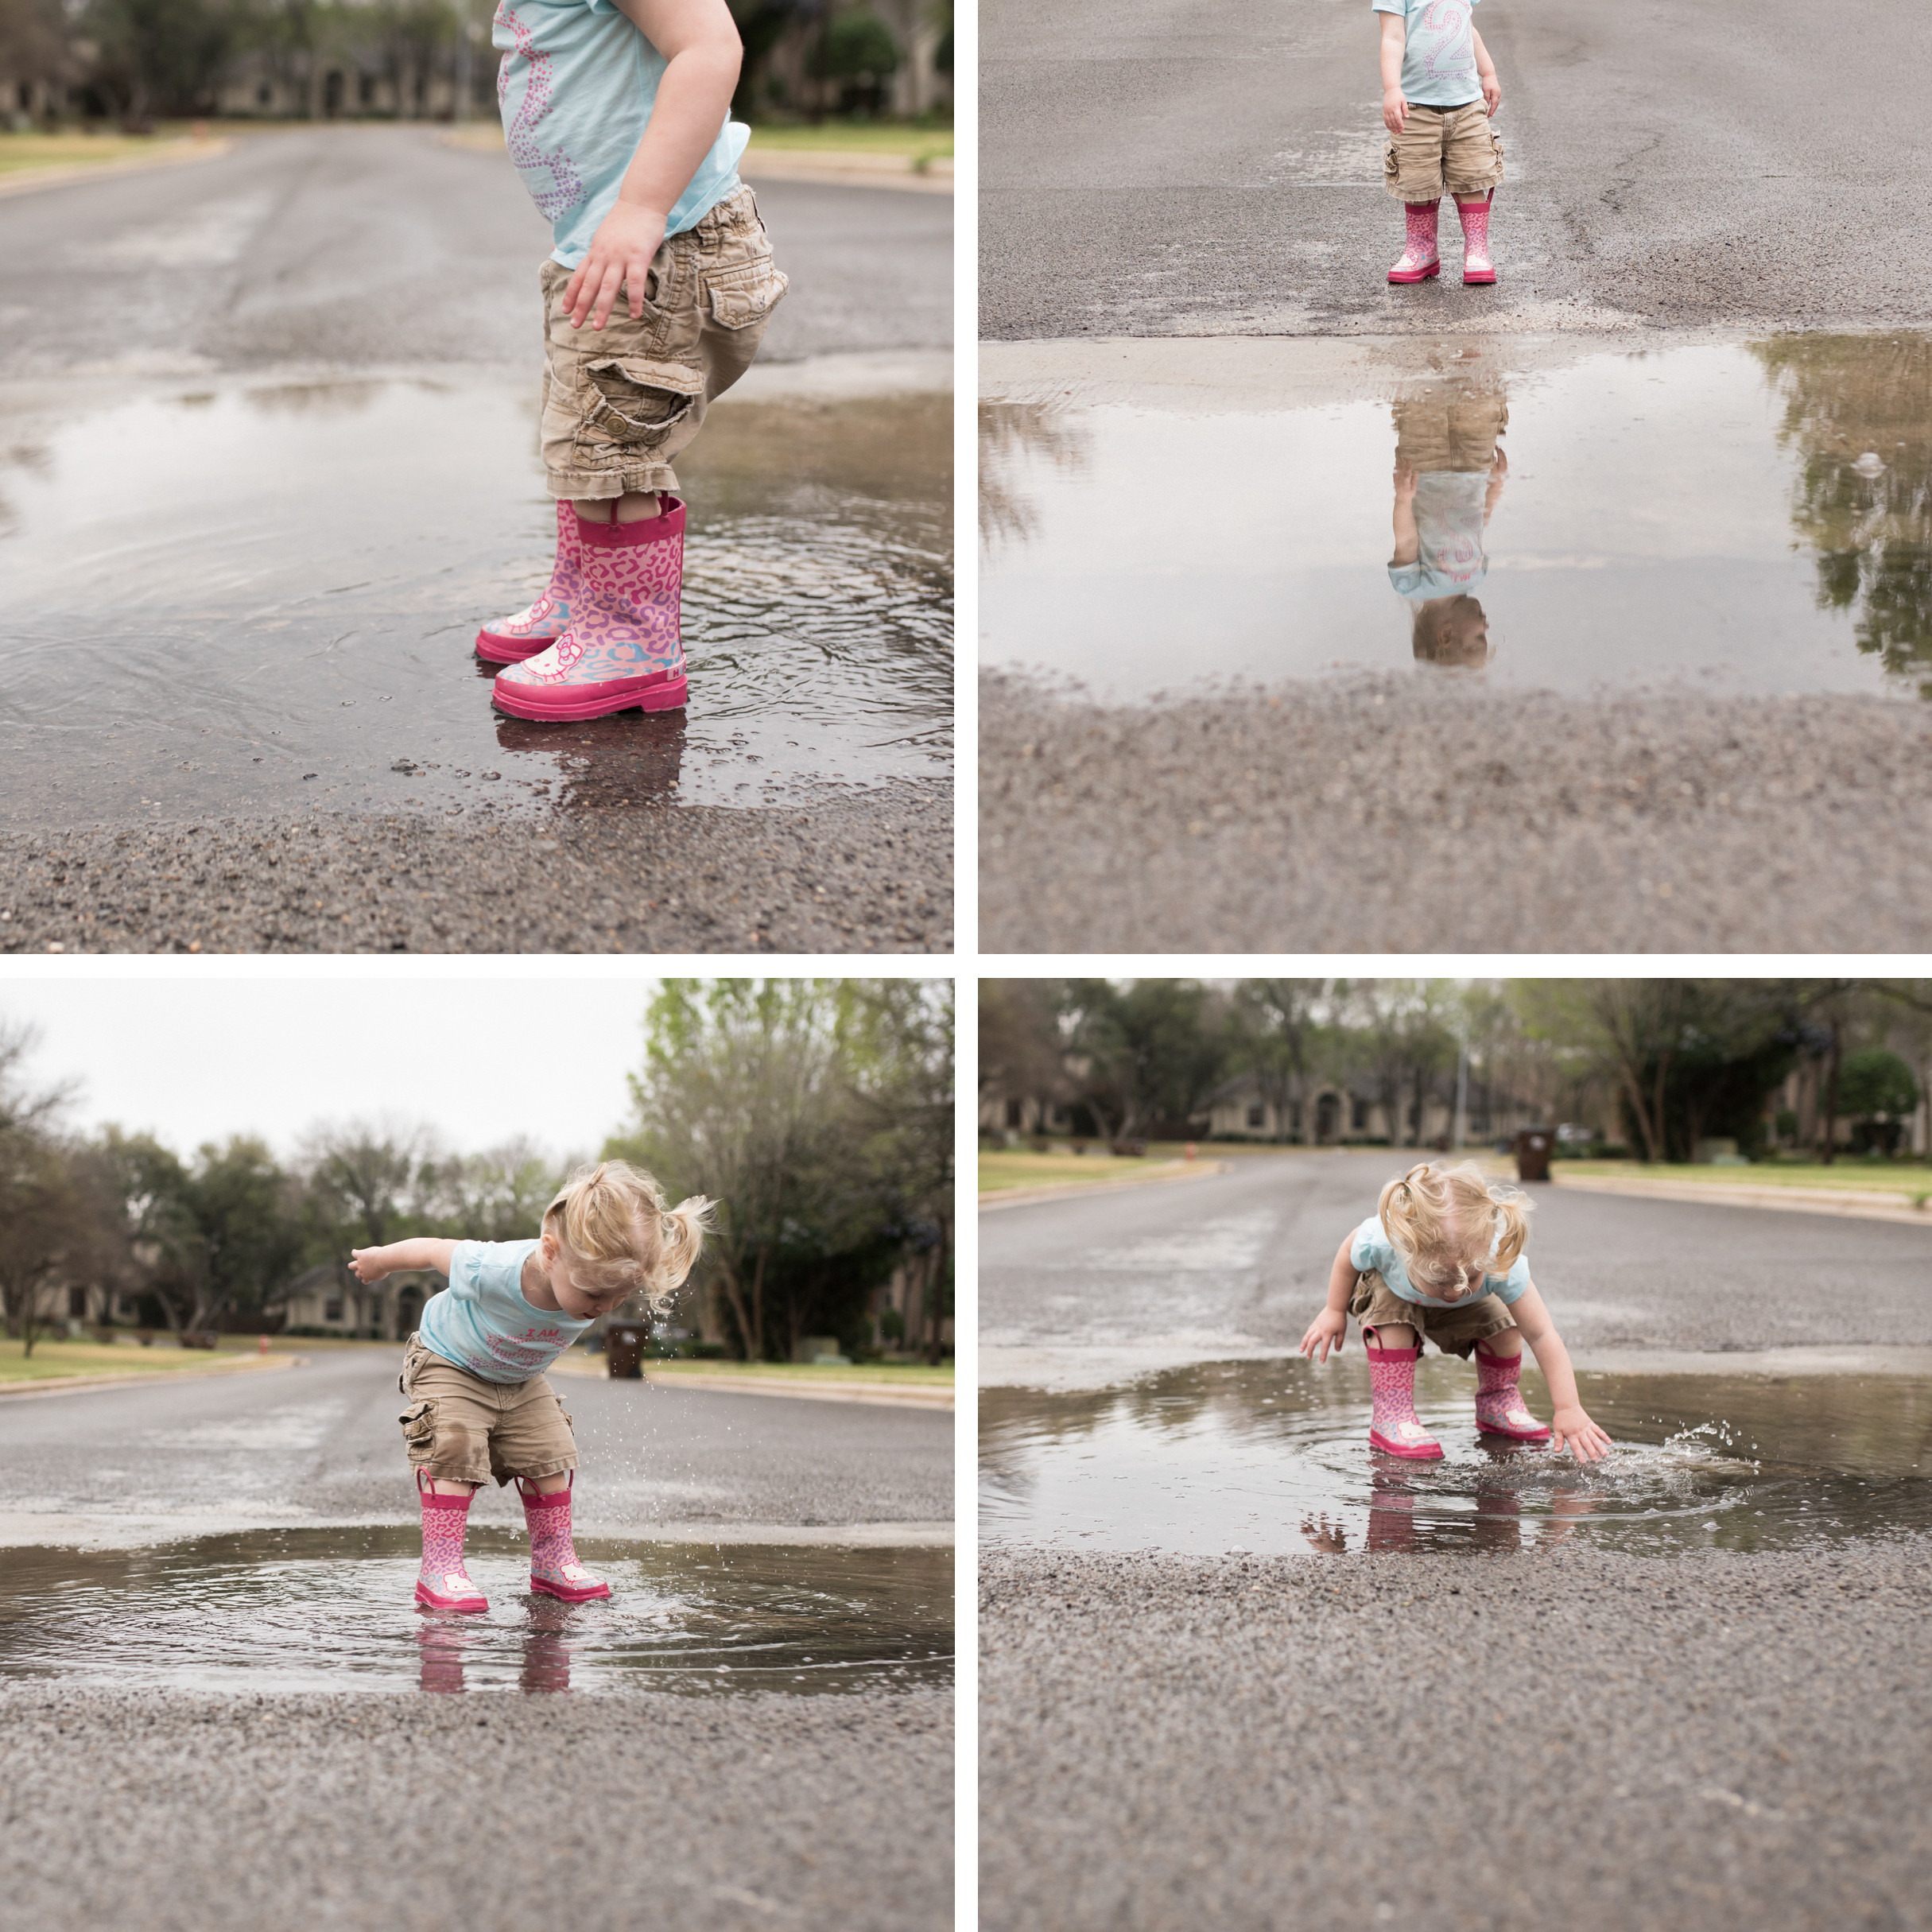 It stopped raining, so I took her outside to play in the puddles.